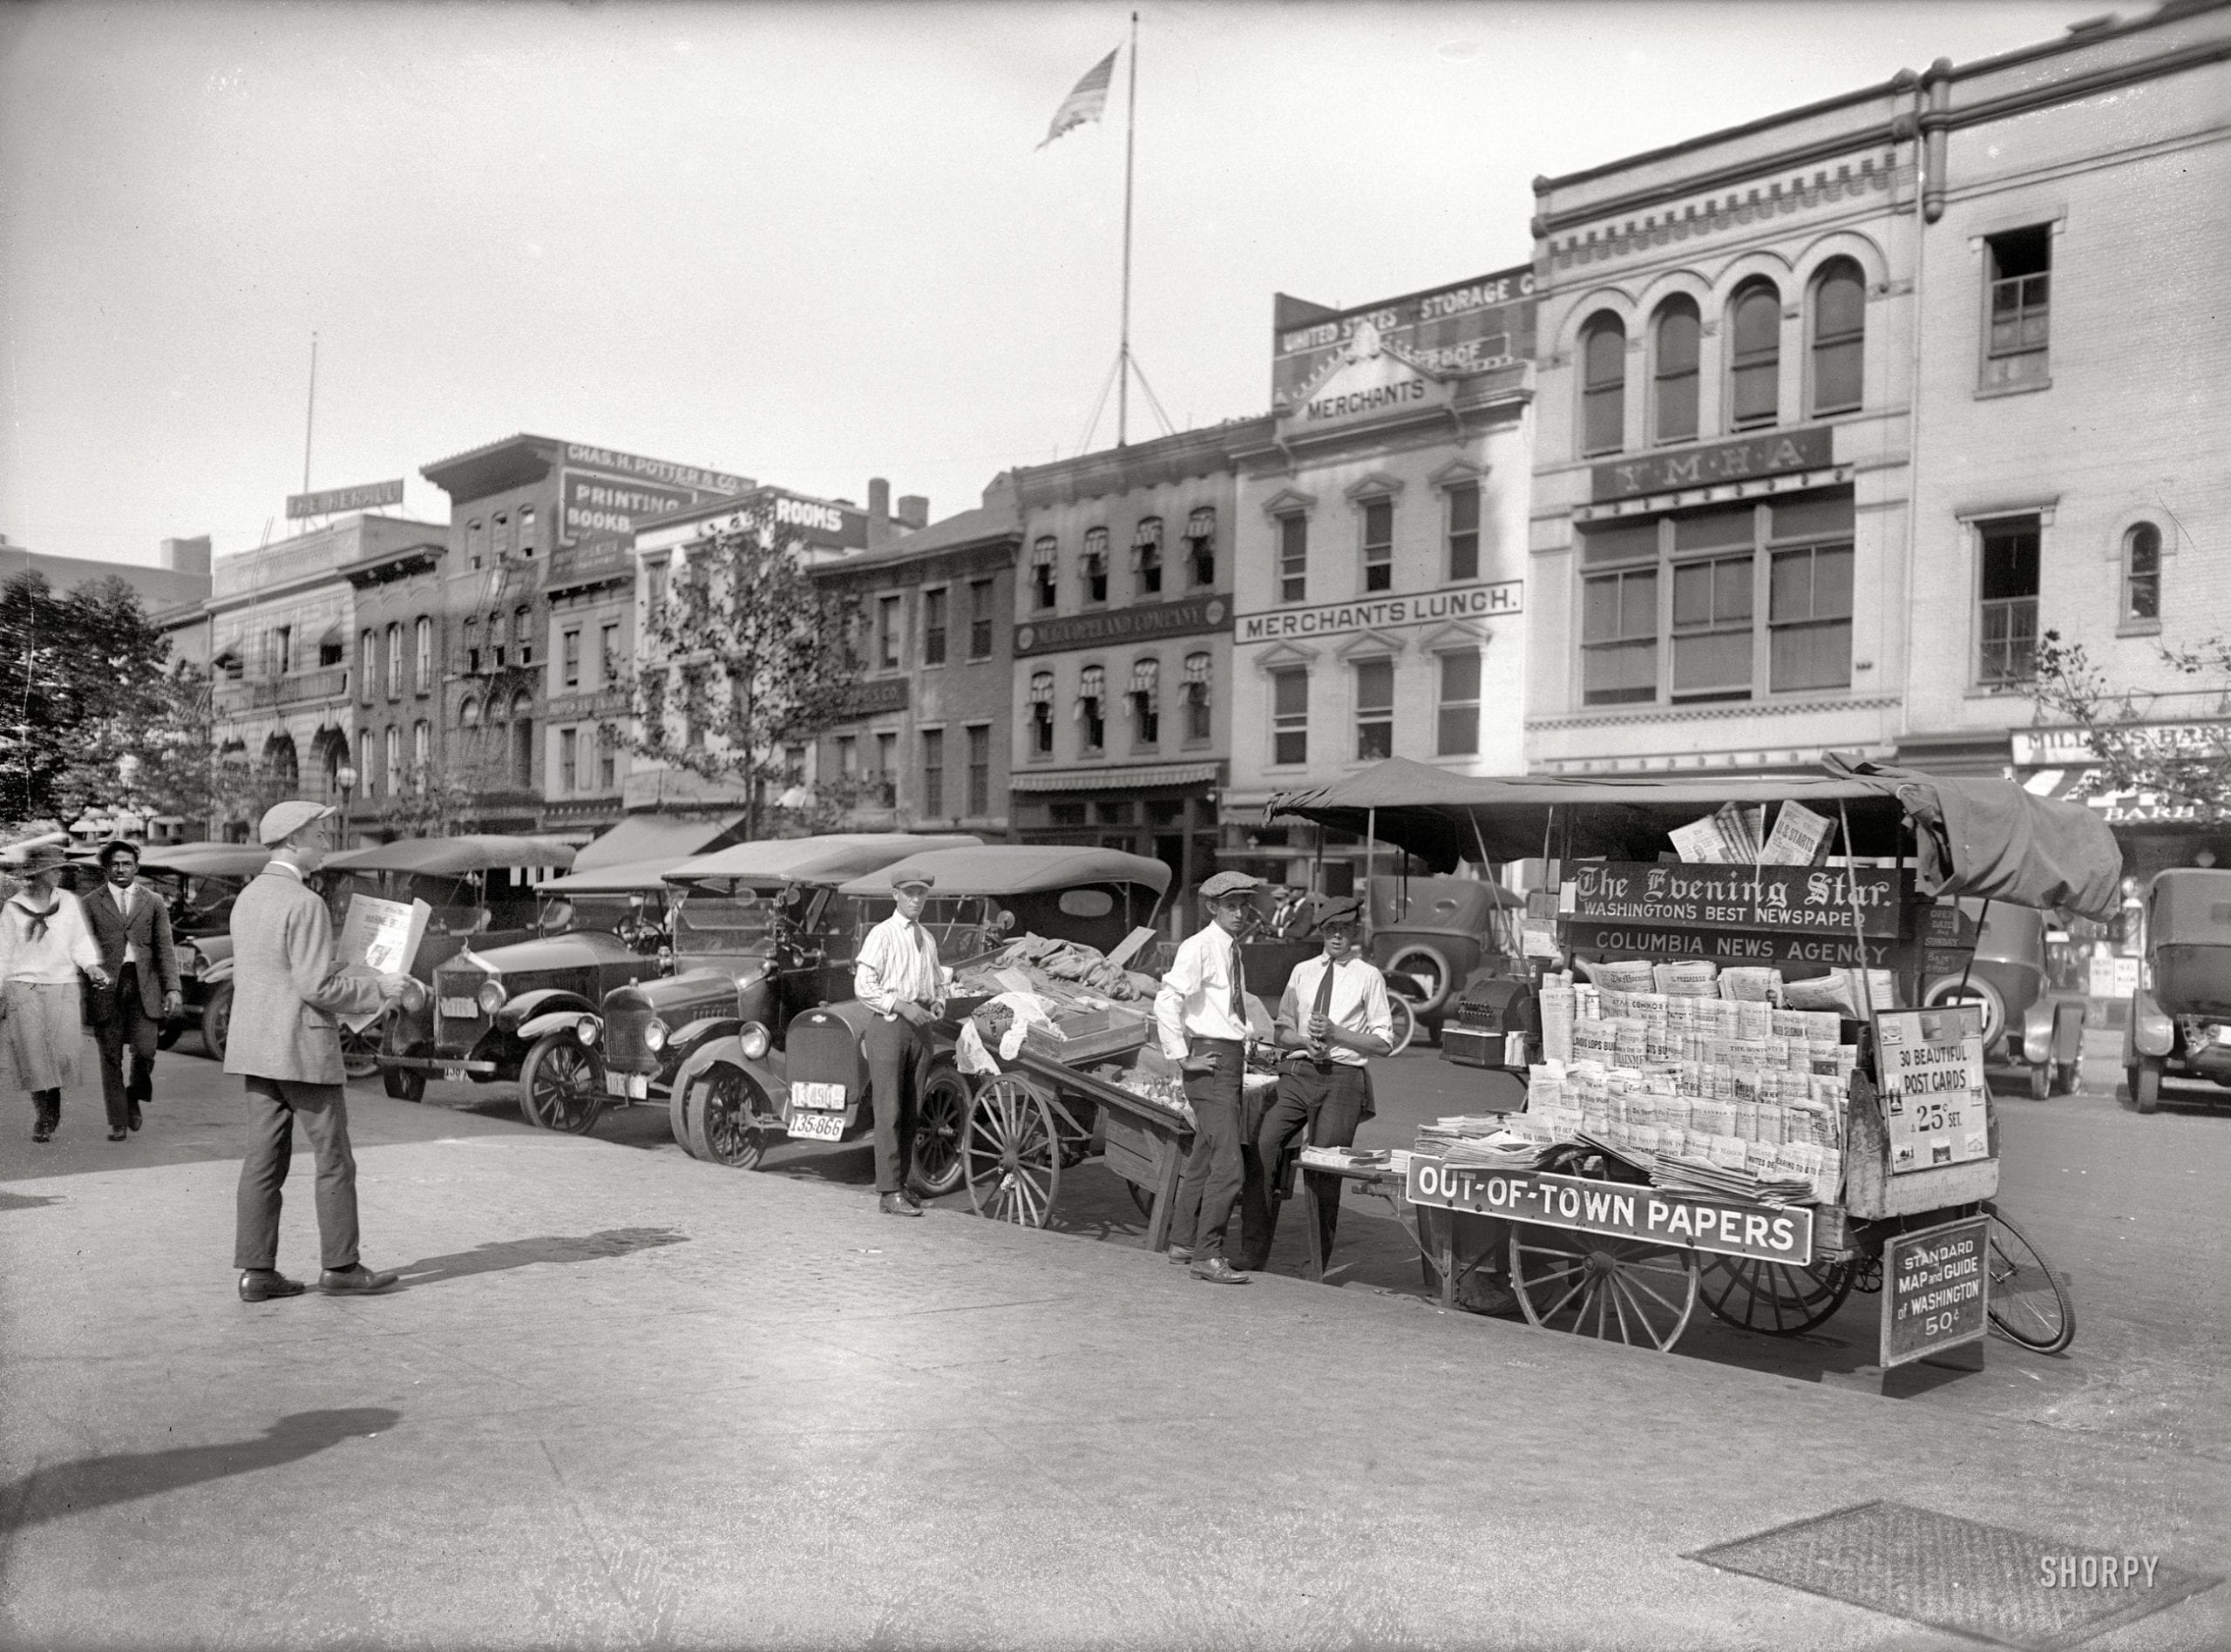 "Washington, D.C., 1921. ""National Fruit Co."" Out-of-town bananas and news. National Photo Company Collection glass negative."